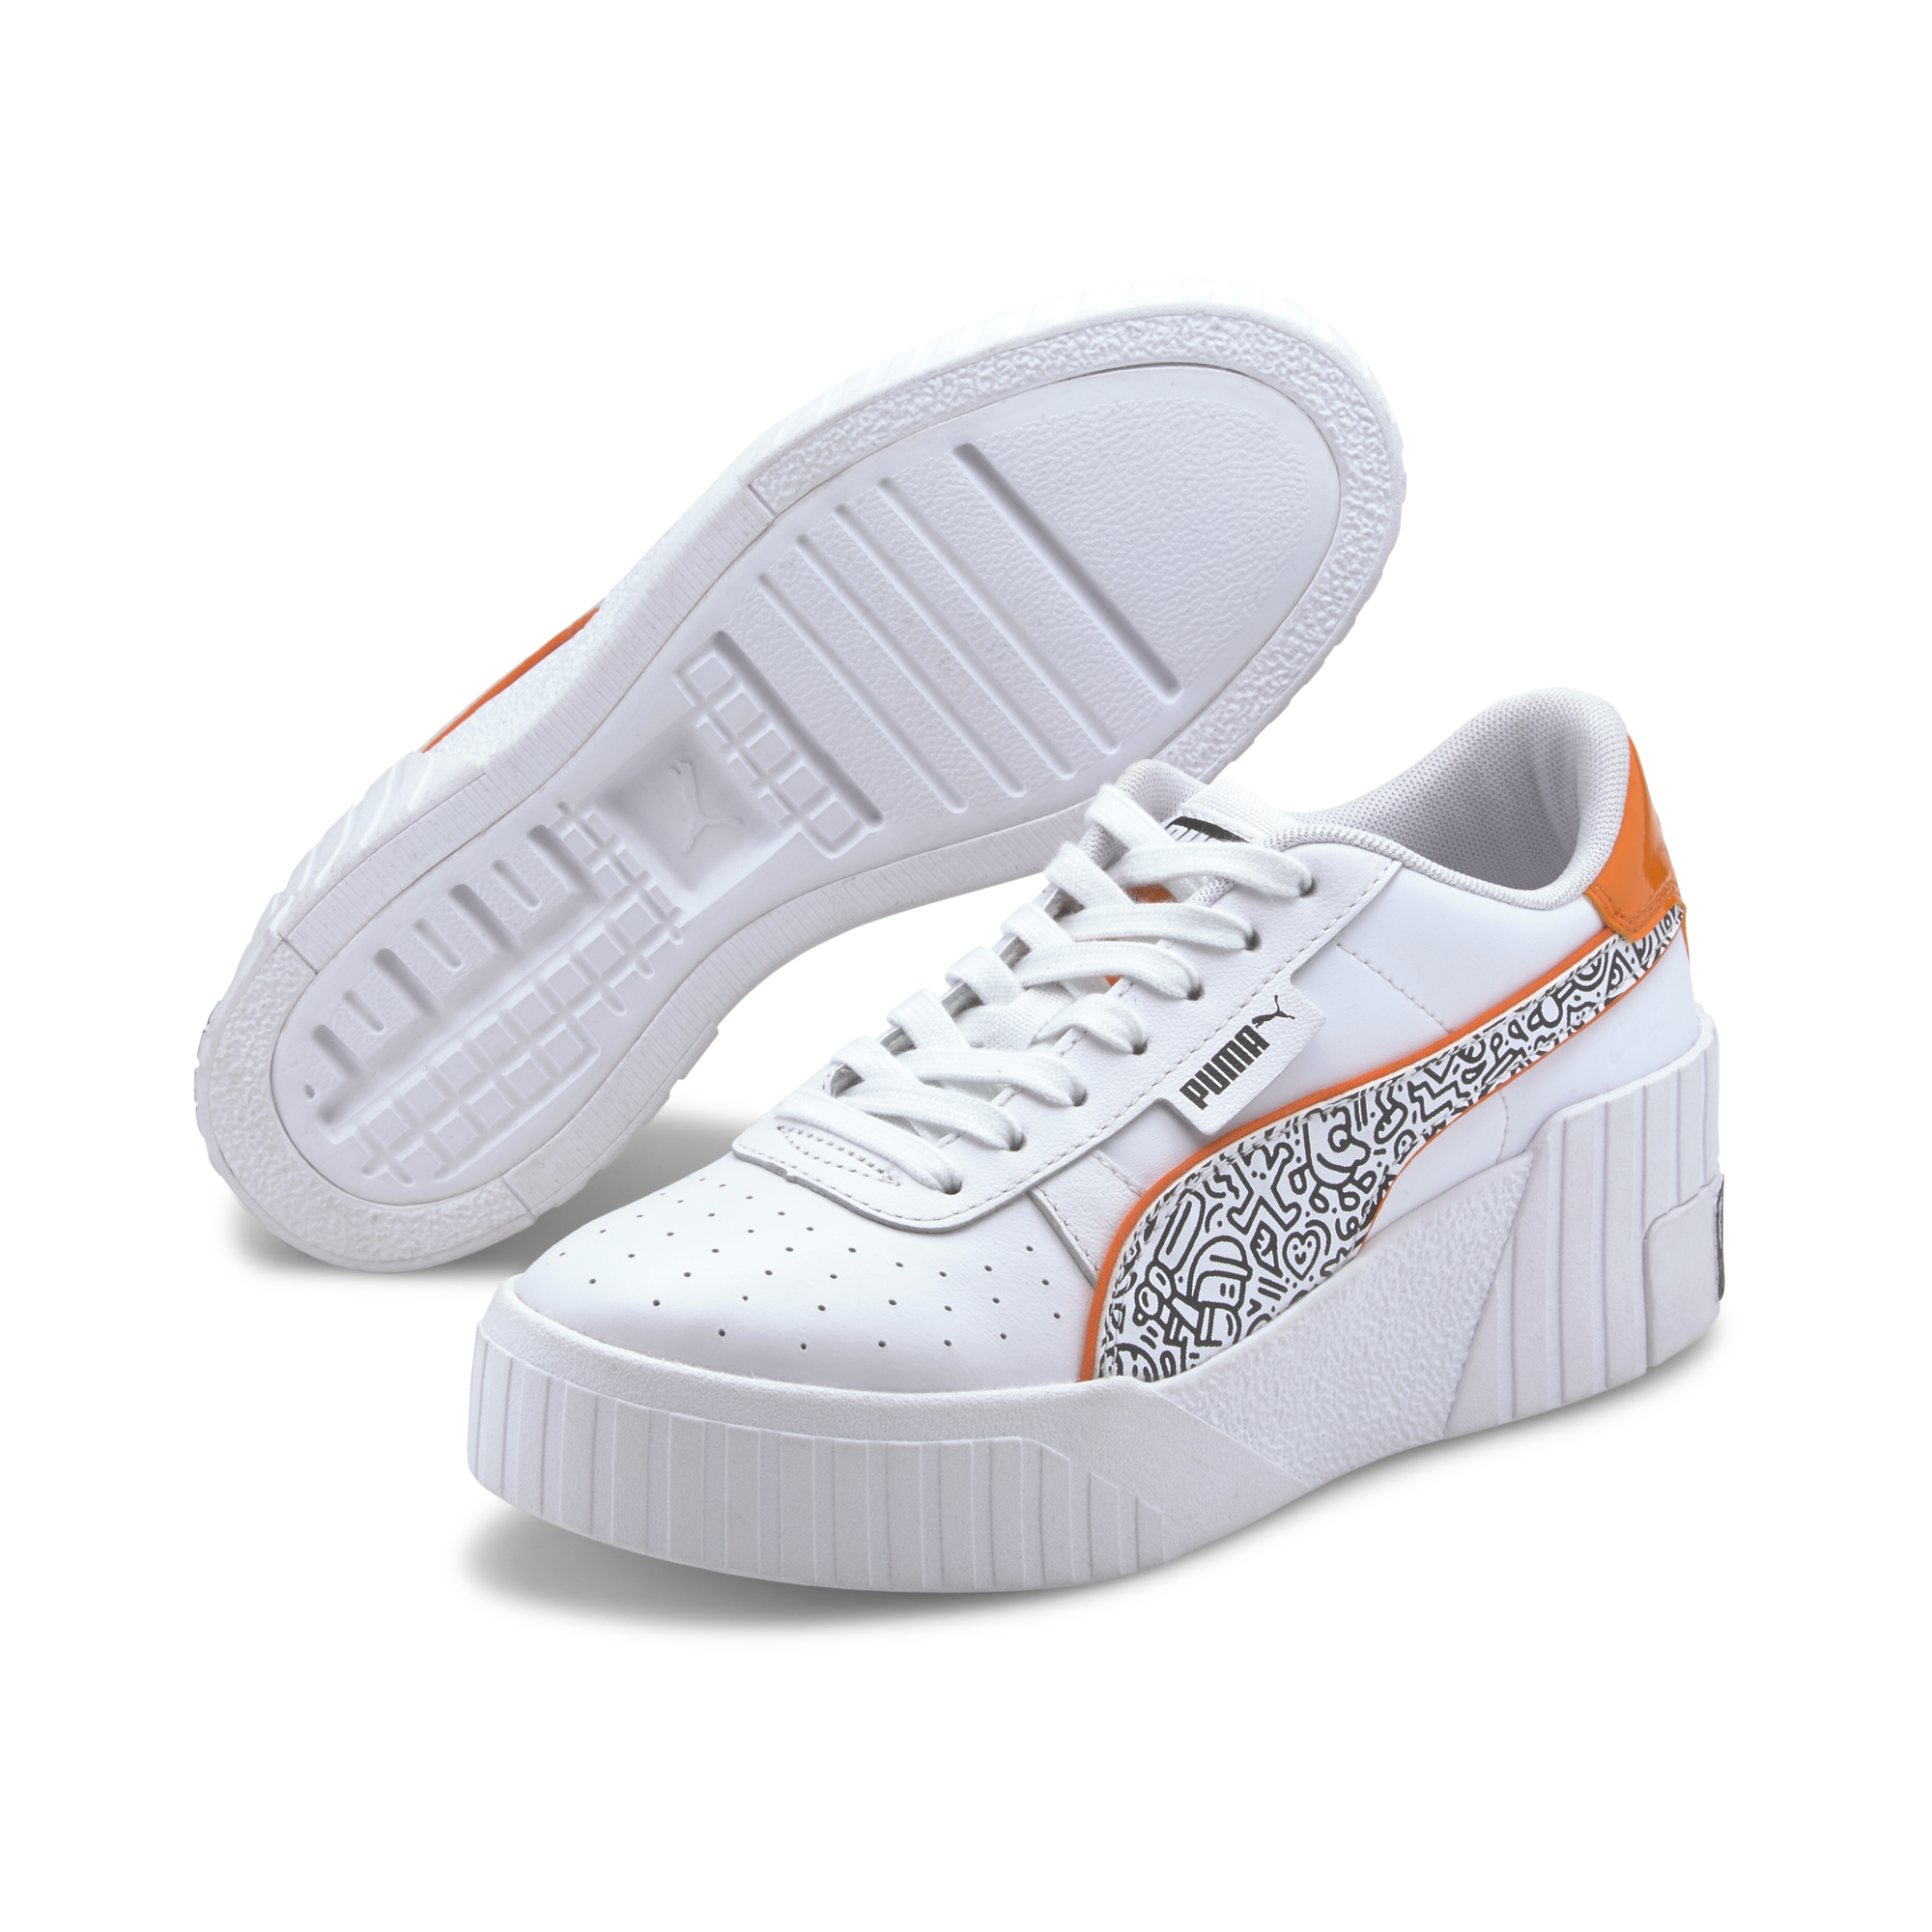 Puma Cali Wedge MR DOODLE Puma White-Black-Dragon Fire